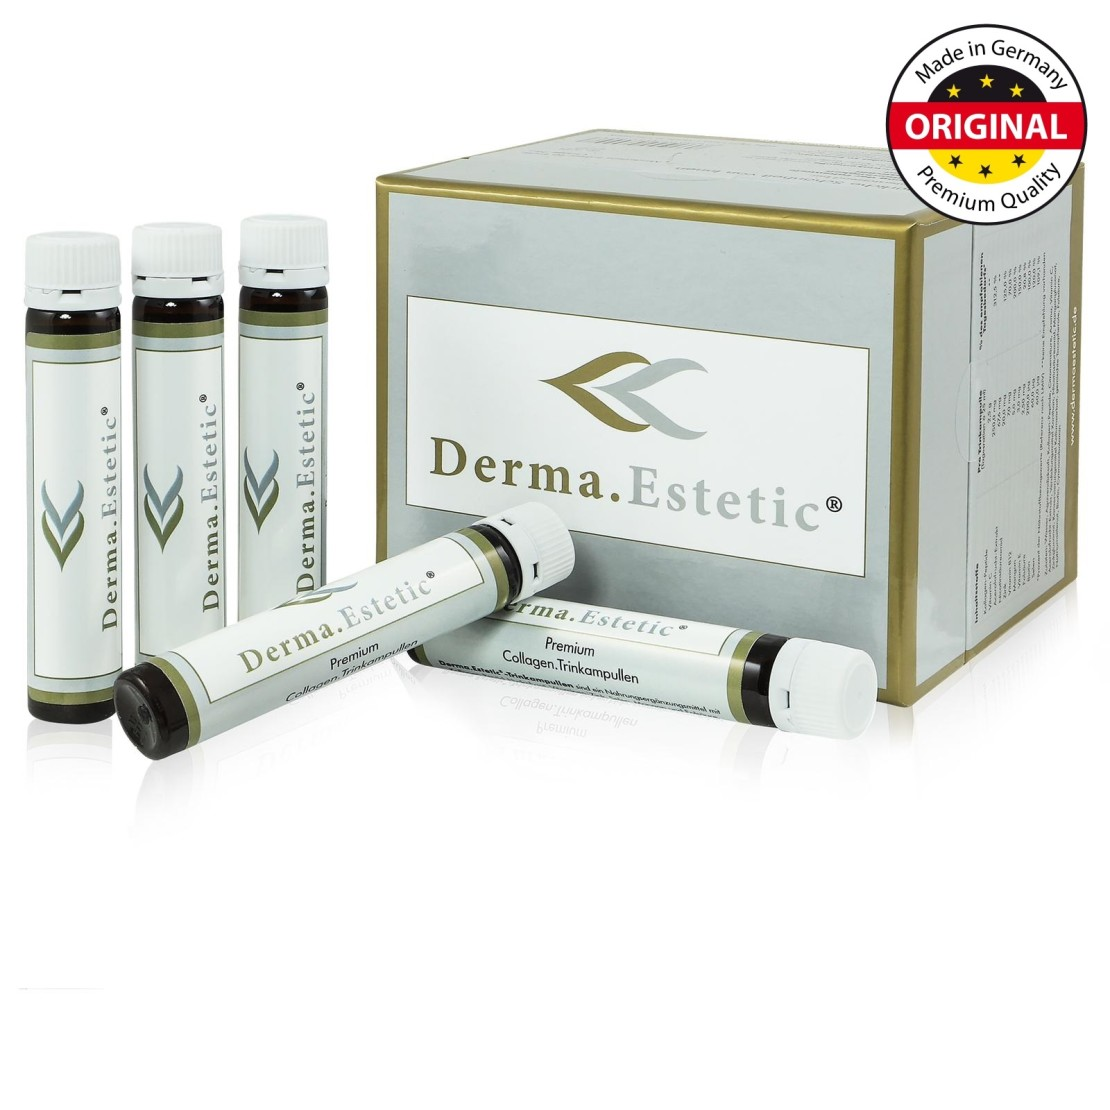 Derma.Estetic -Premium Collagen Trinkampullen 3 certificated